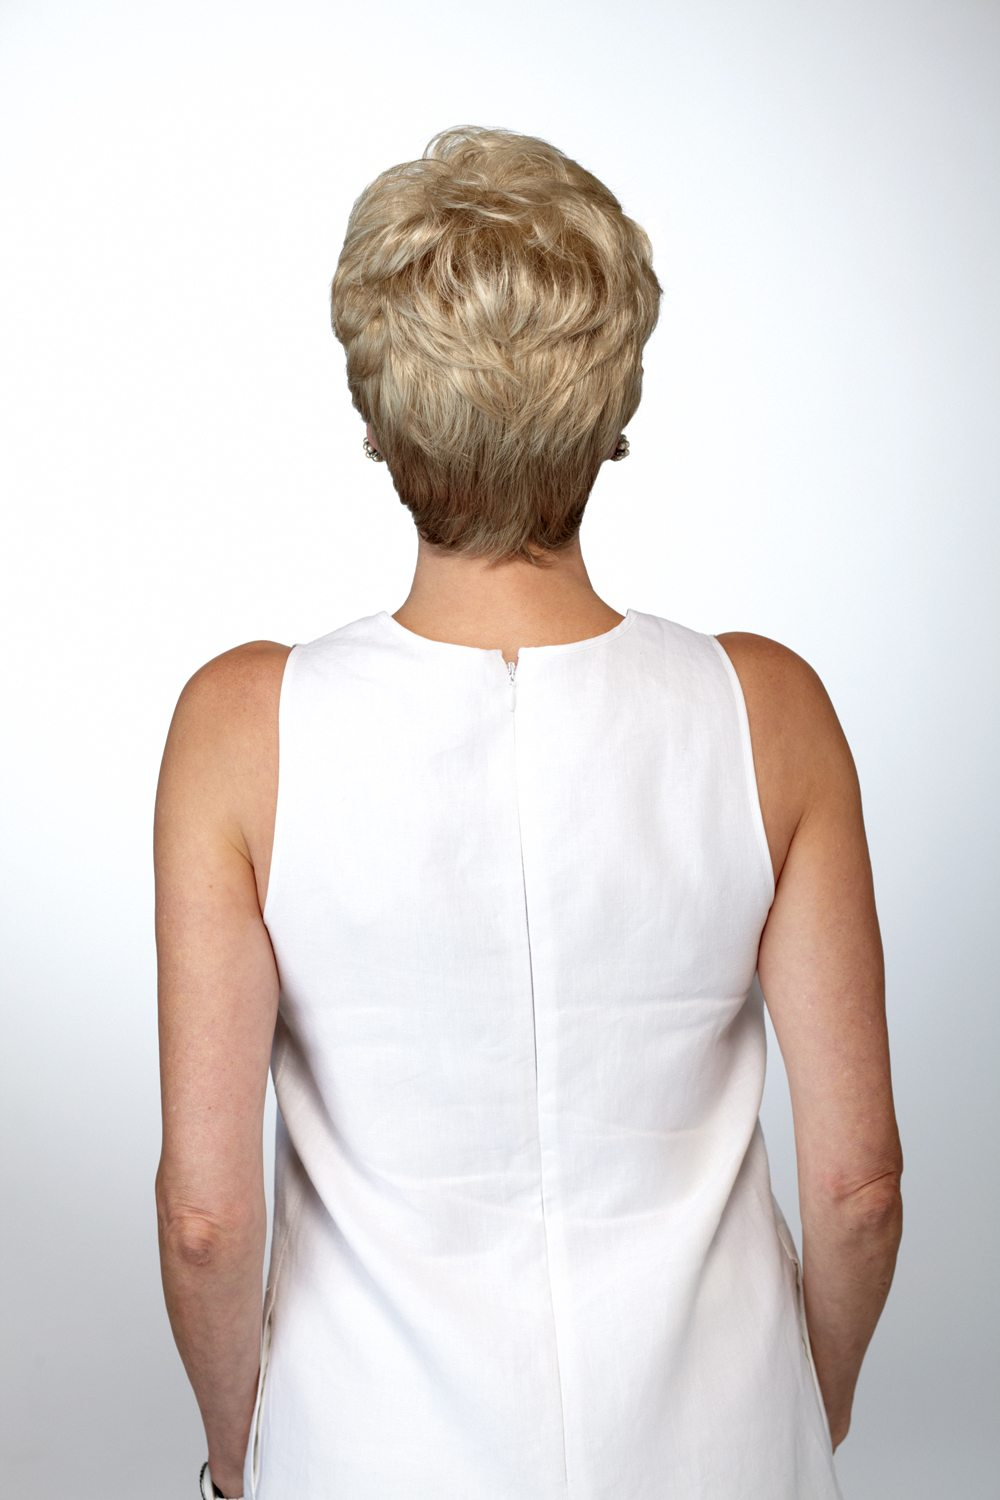 Kim Wig Natural Image - image Kim-Wheat-BACK on https://purewigs.com